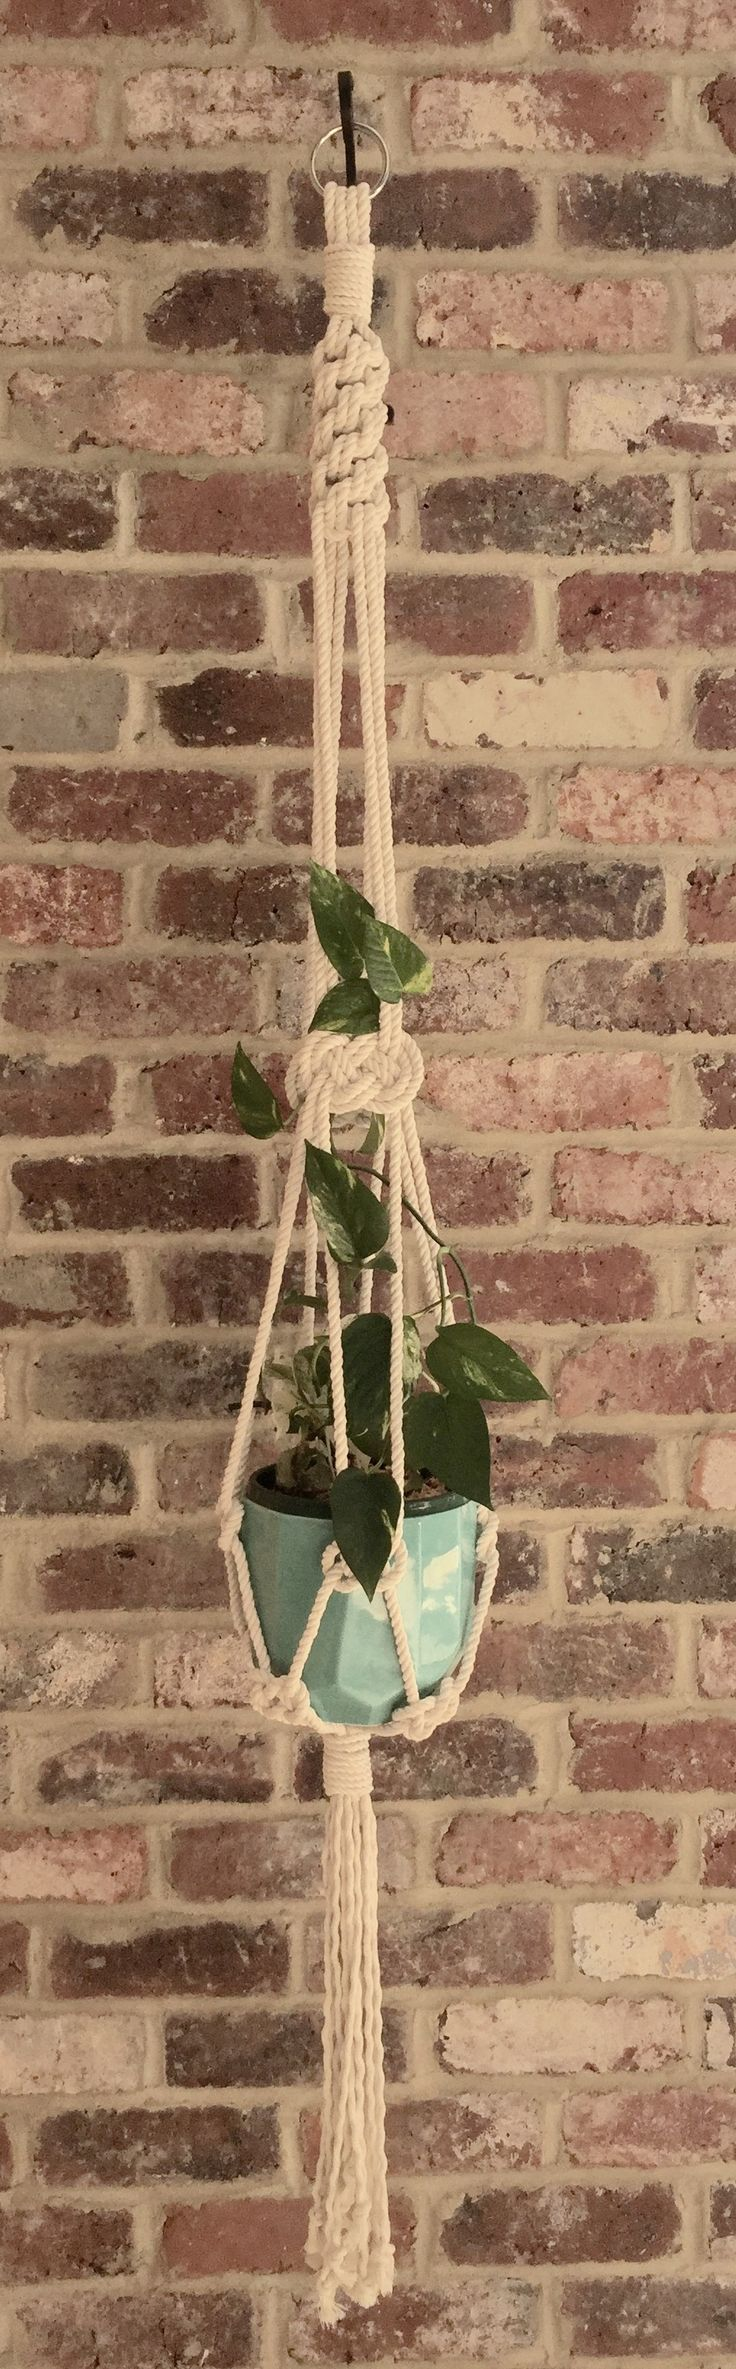 Medium Macrame Plant Hanger 8mm Natural Cotton twisted rope